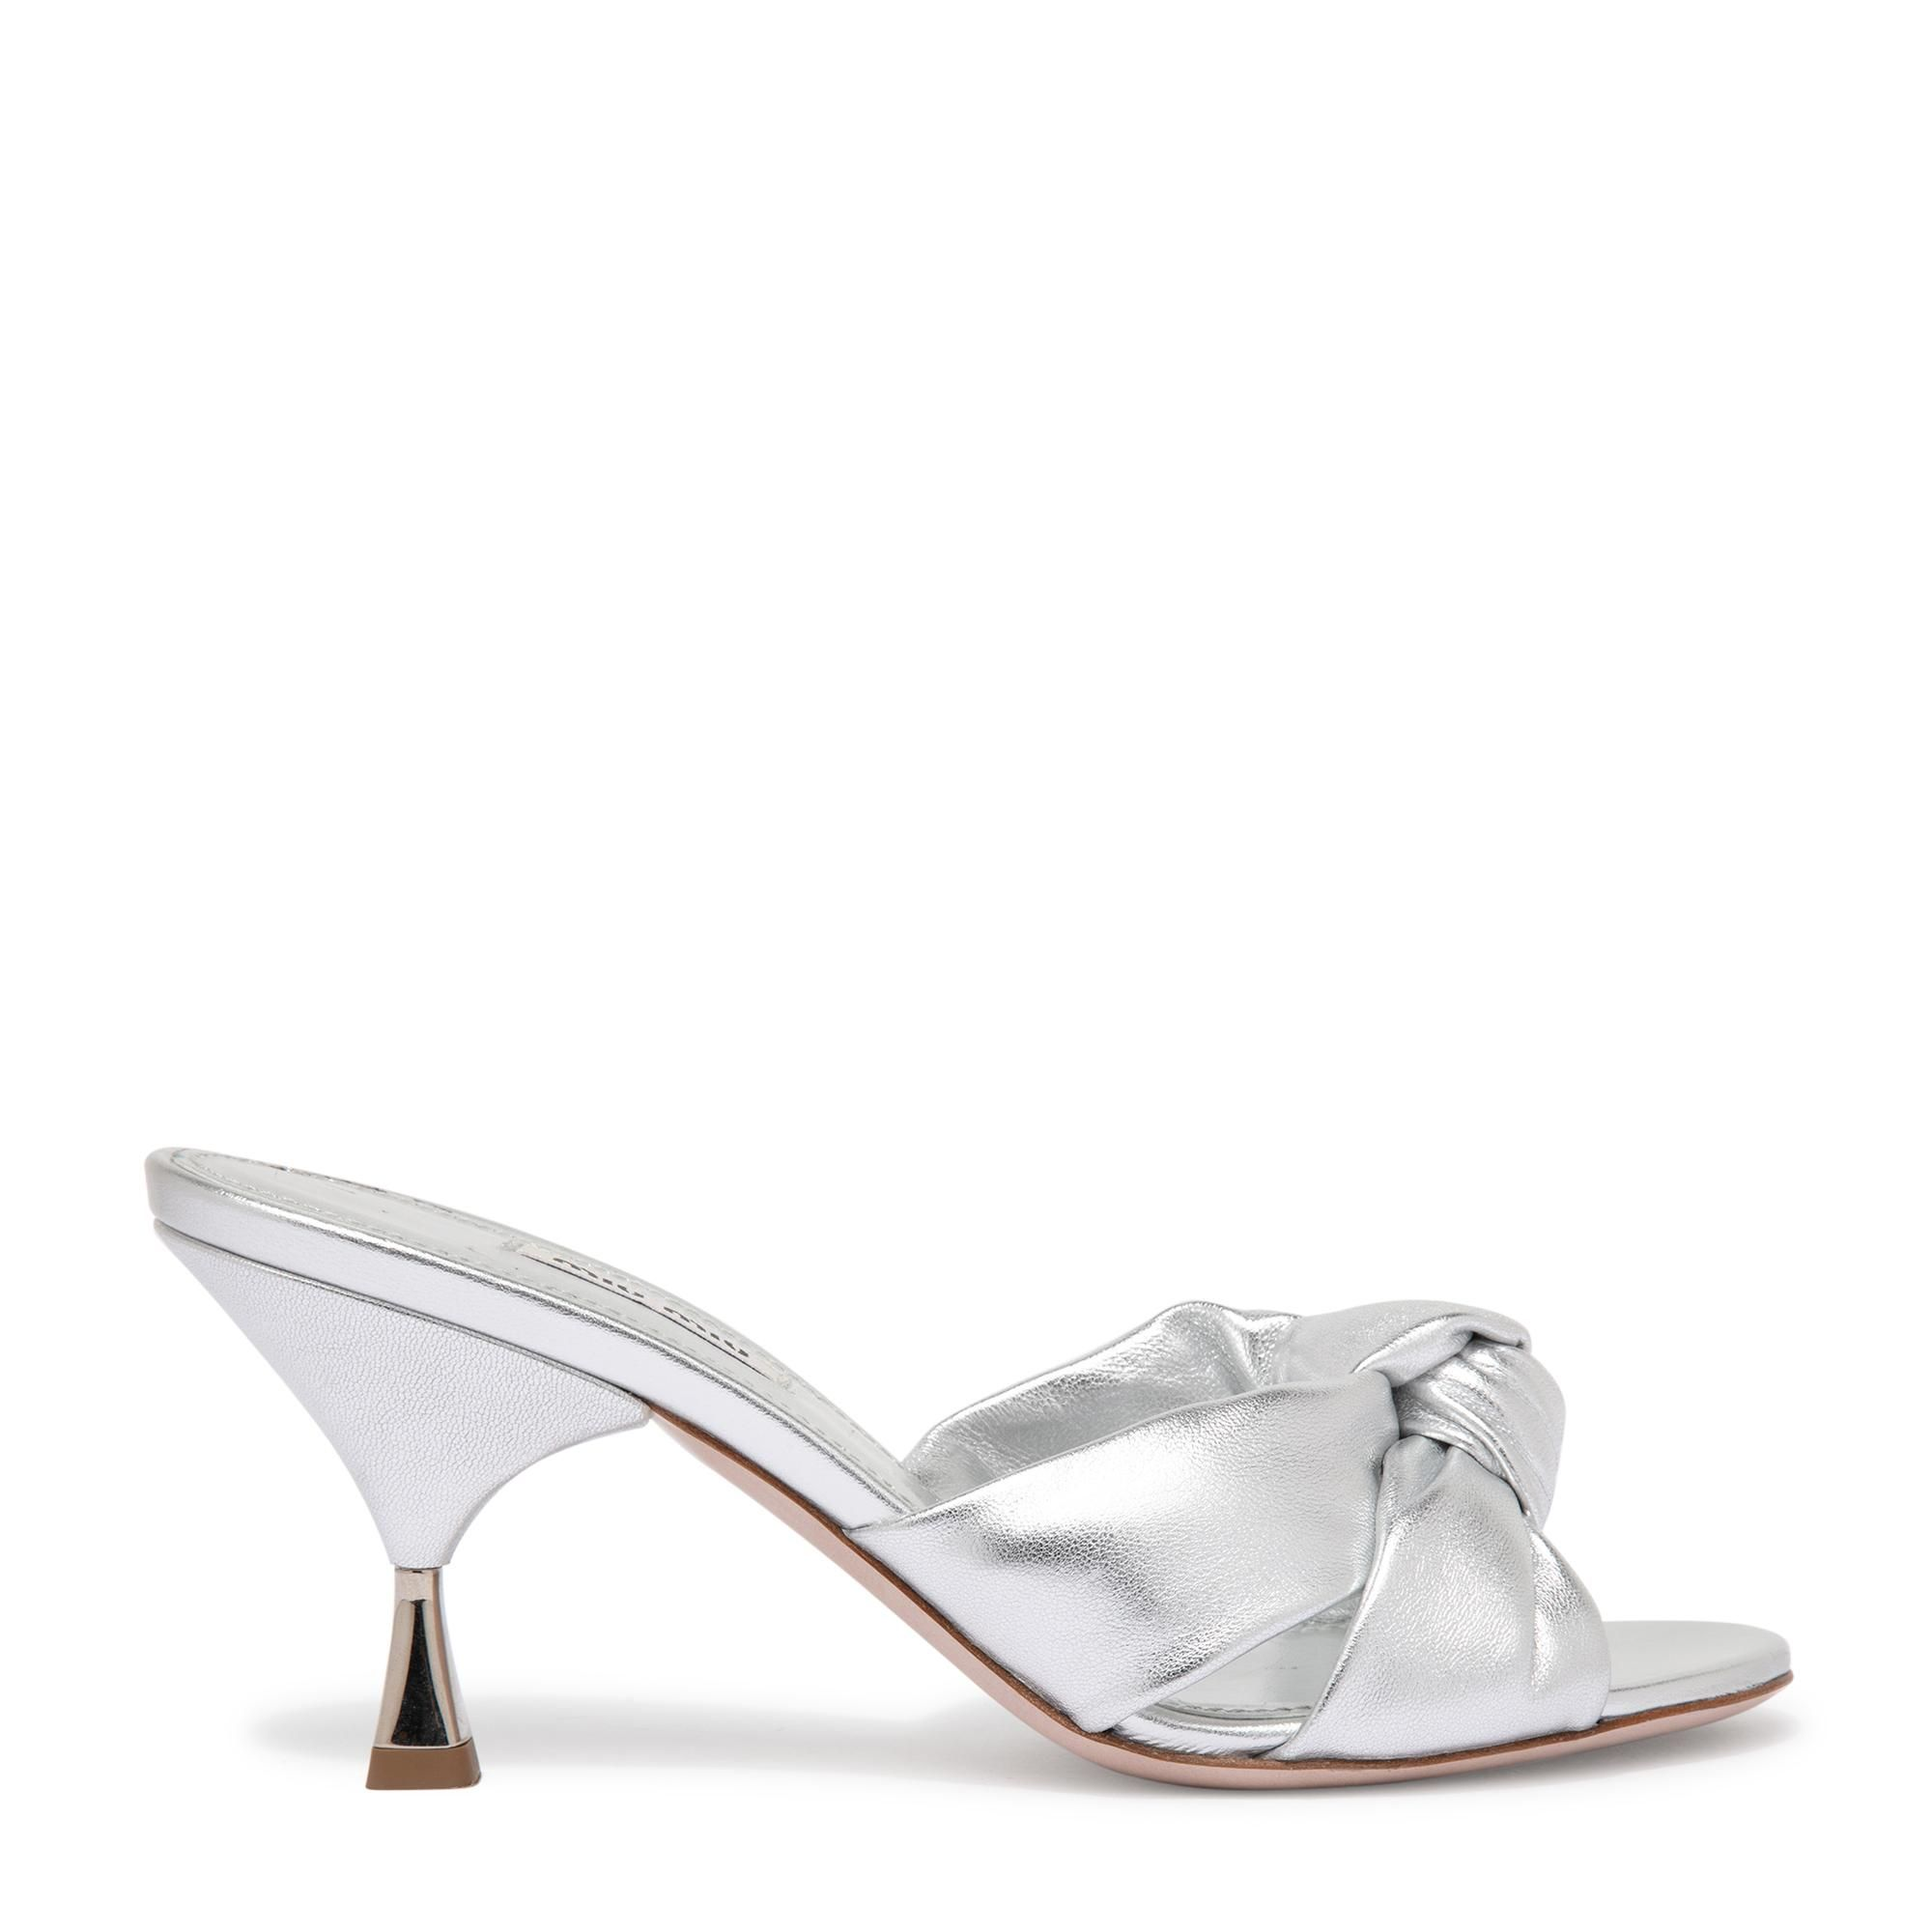 Knot mules